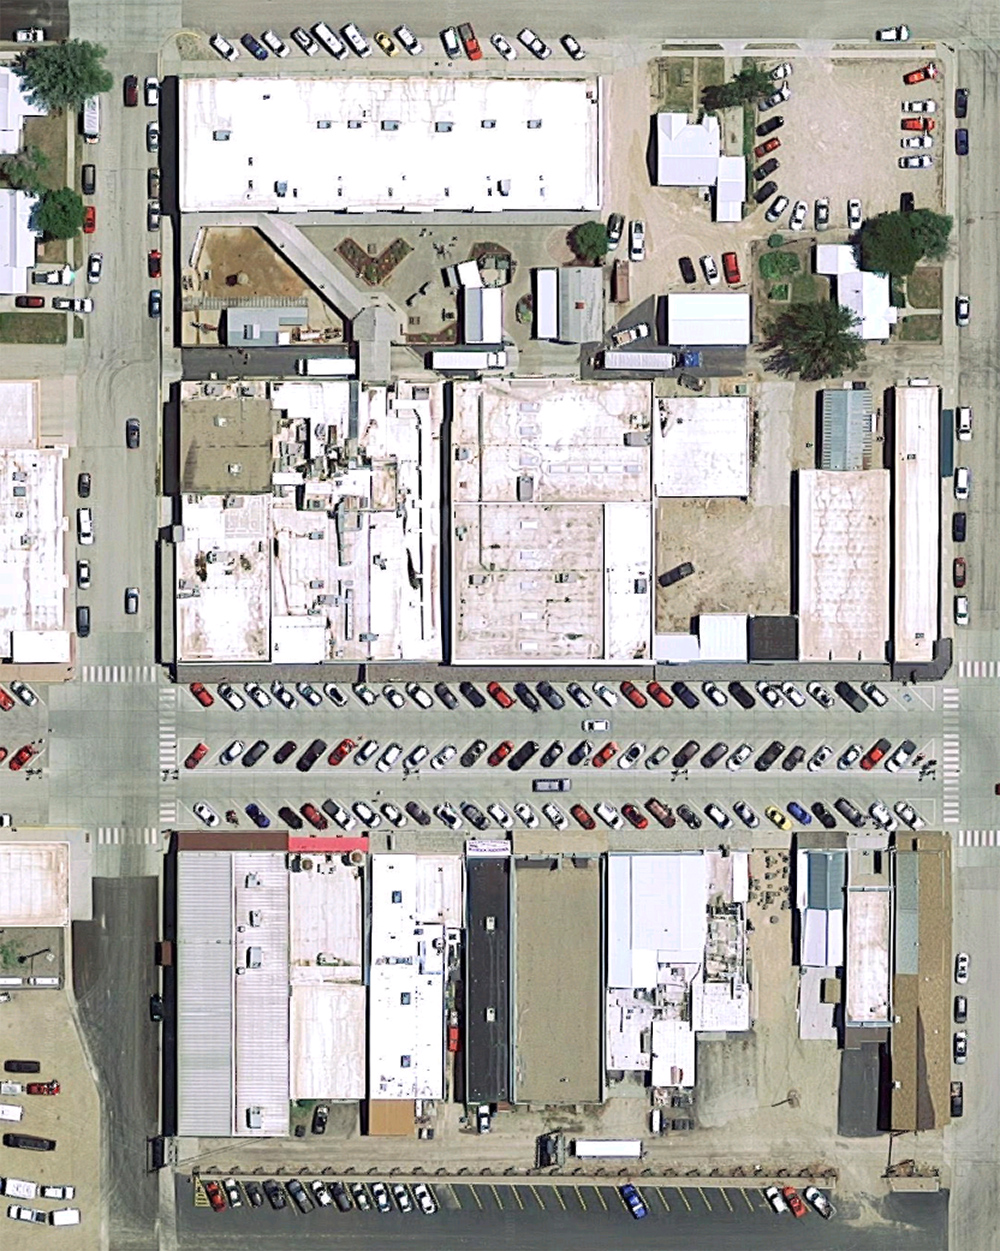 Wall Drug complex, satellite view. Click for Google Map link.